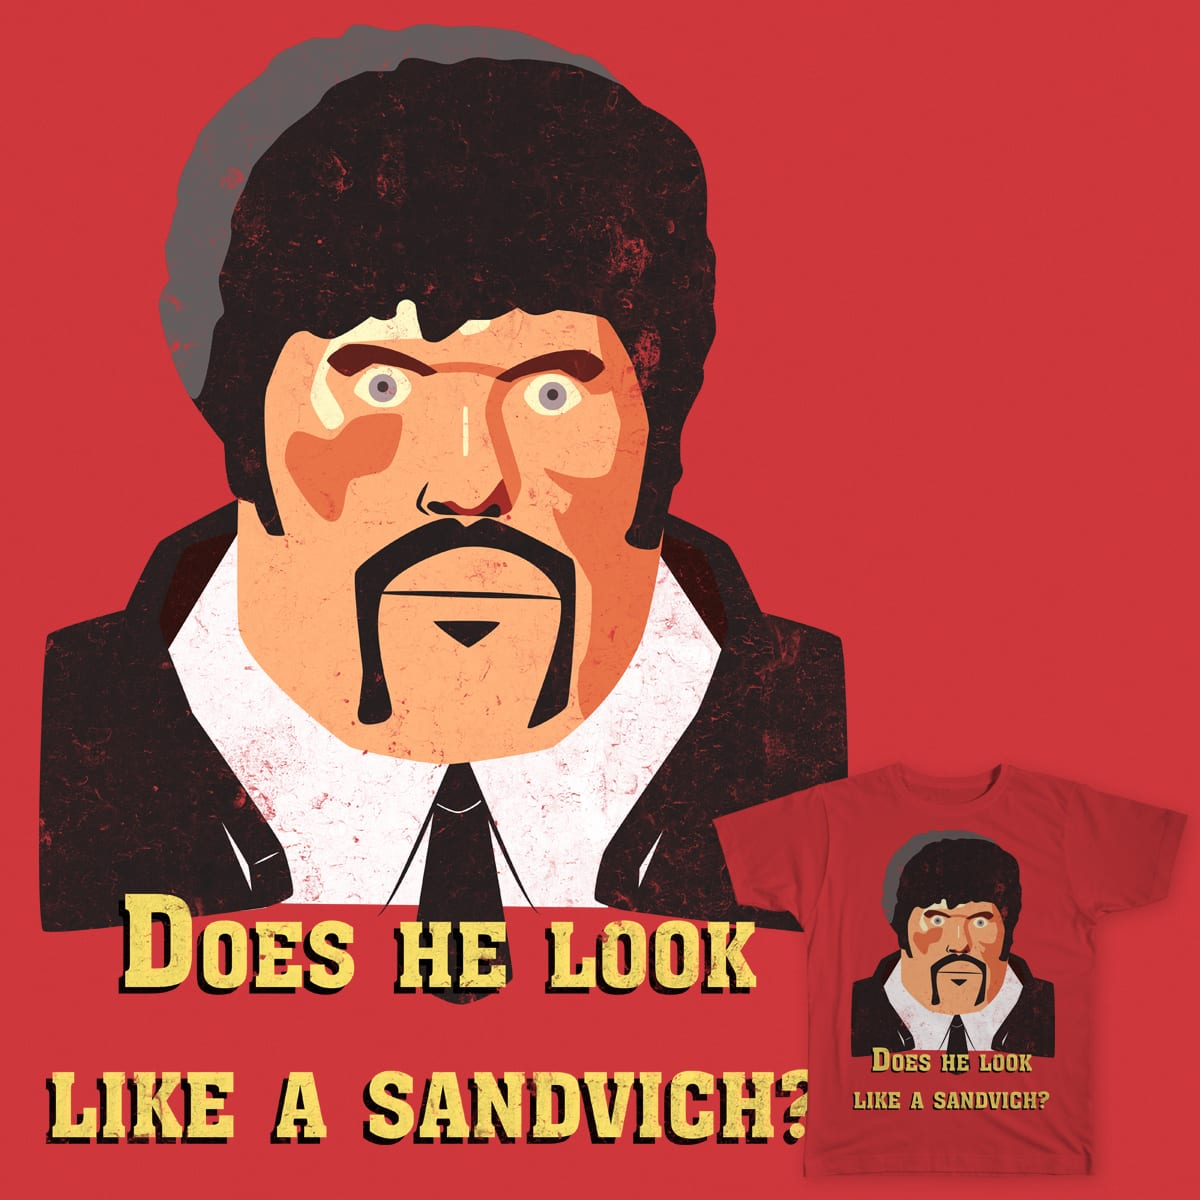 Does he look like a sandvich? by Kaitos on Threadless